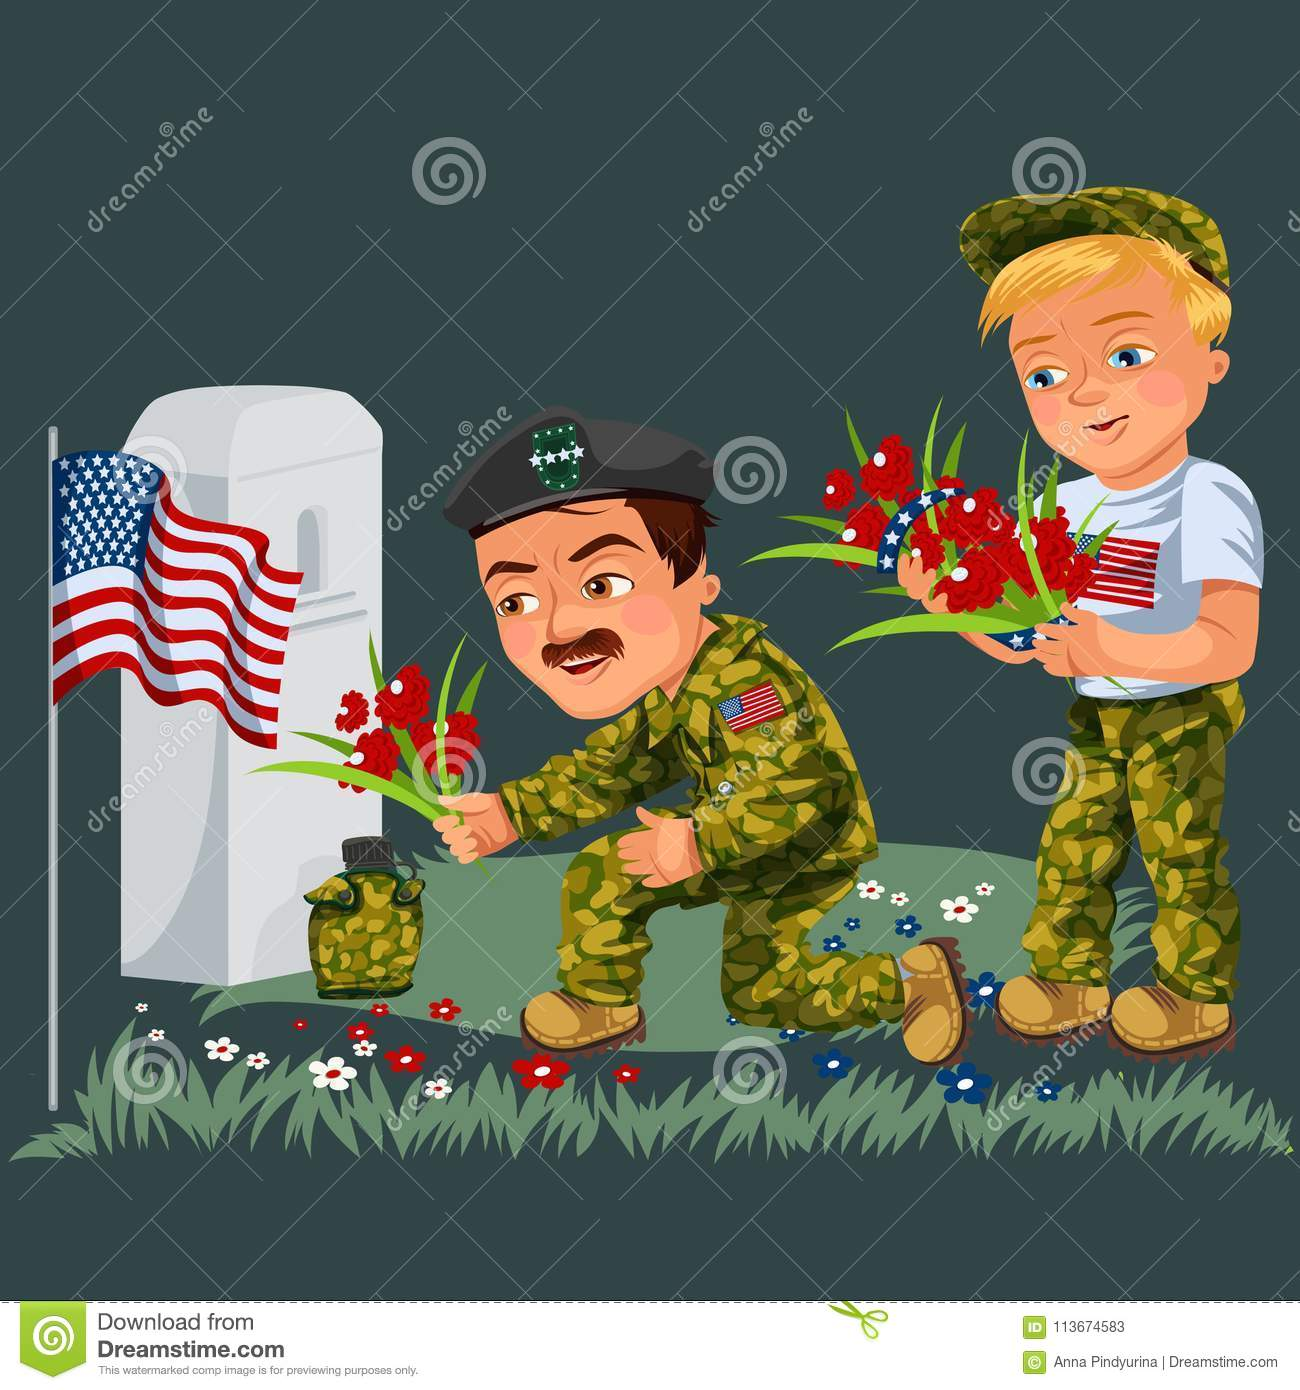 Memorial day background, American veterans lay flowers to white tombstone of monument with us flag, soldiers in uniform